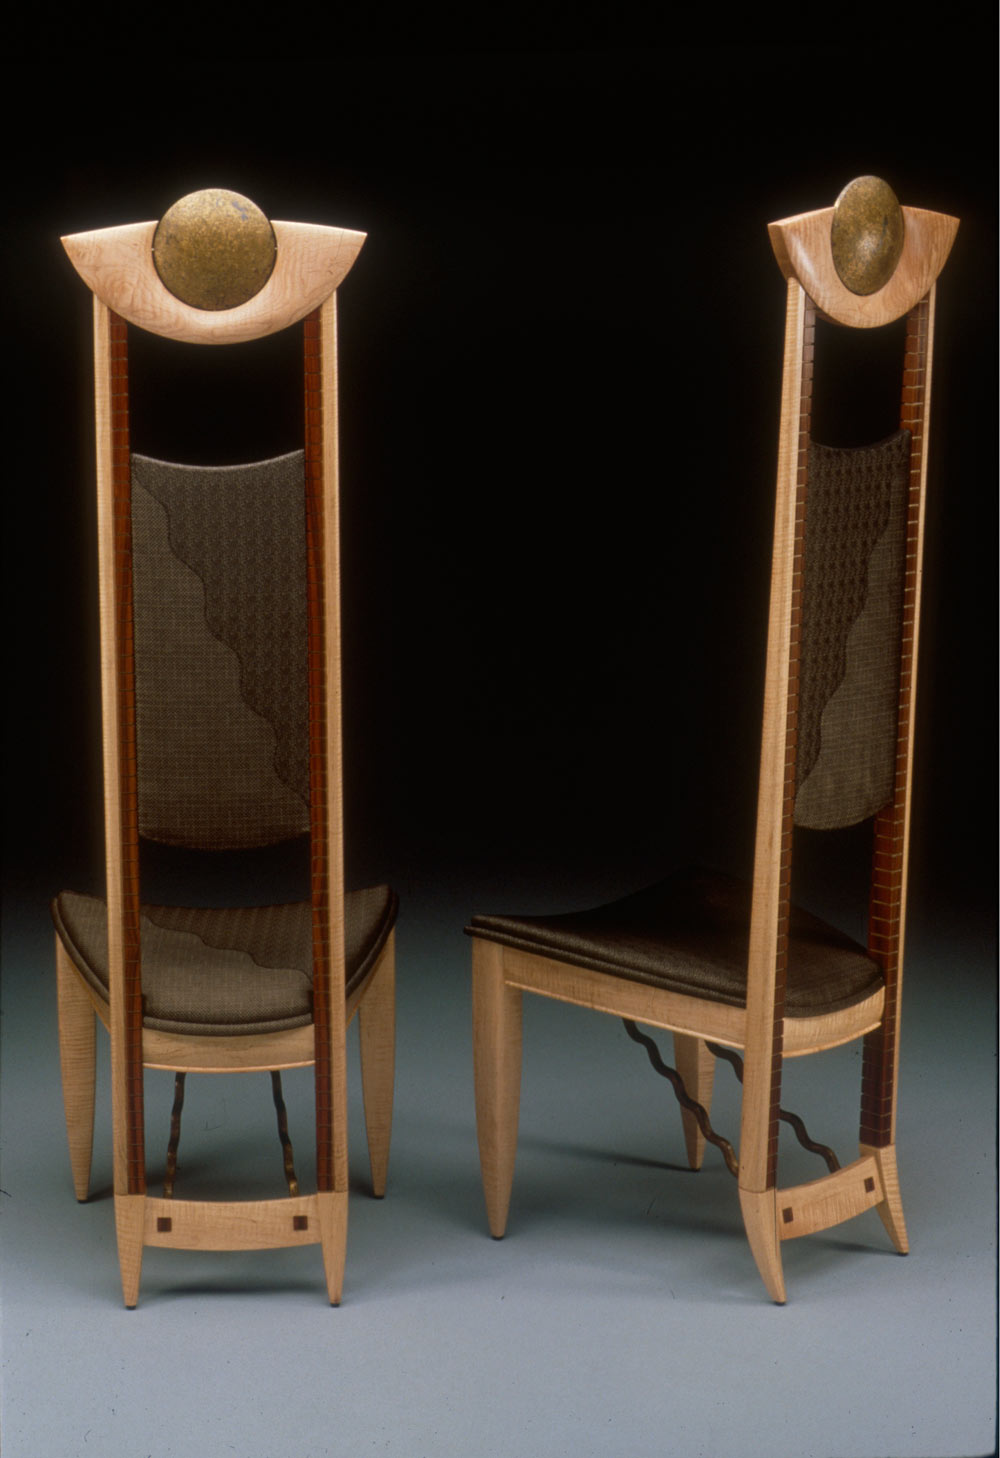 Chairs, 2003